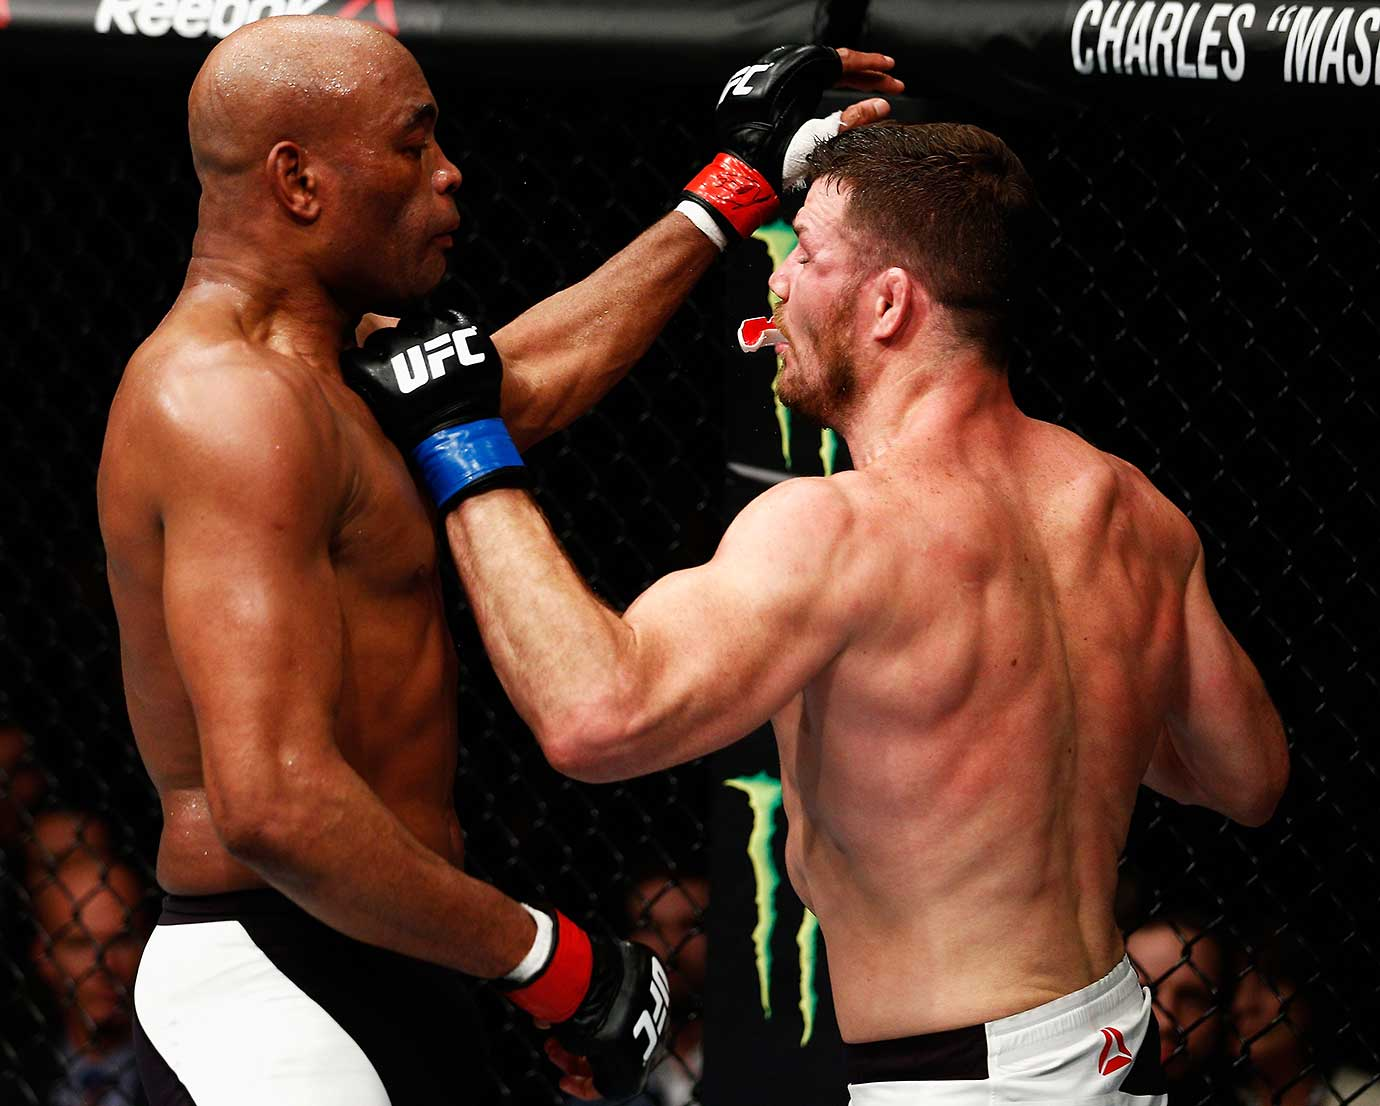 Michael Bisping loses his mouthpiece while punching Anderson Silva during their UFC bout in London.